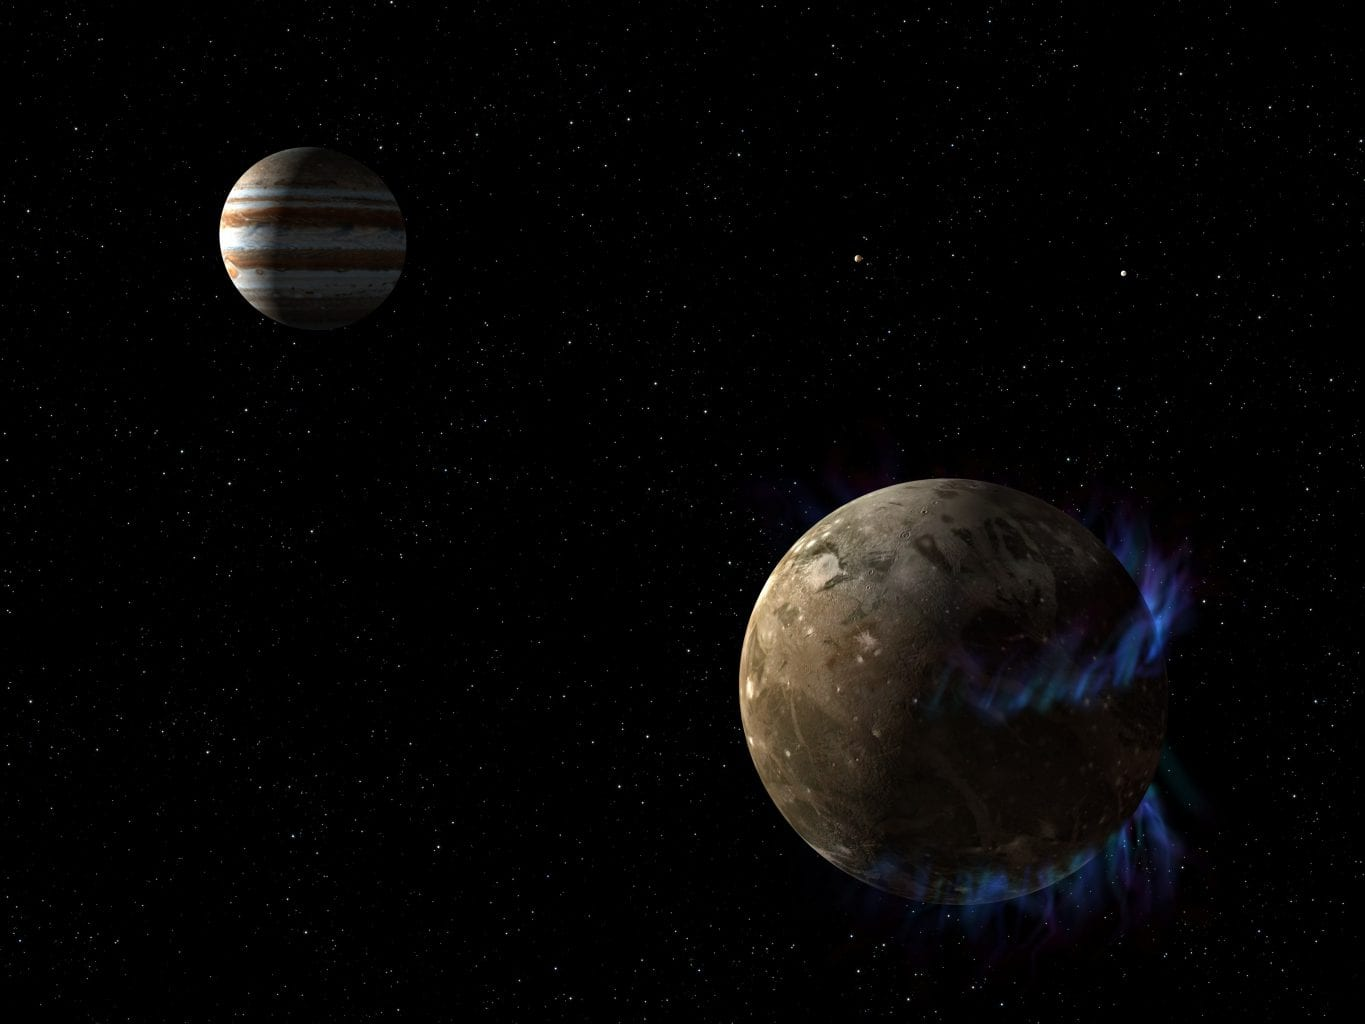 Artist's concept of Jupiter and its largest moon Ganymede. The moon's auroral belts have also been illustrated in blue. Credit: NASA